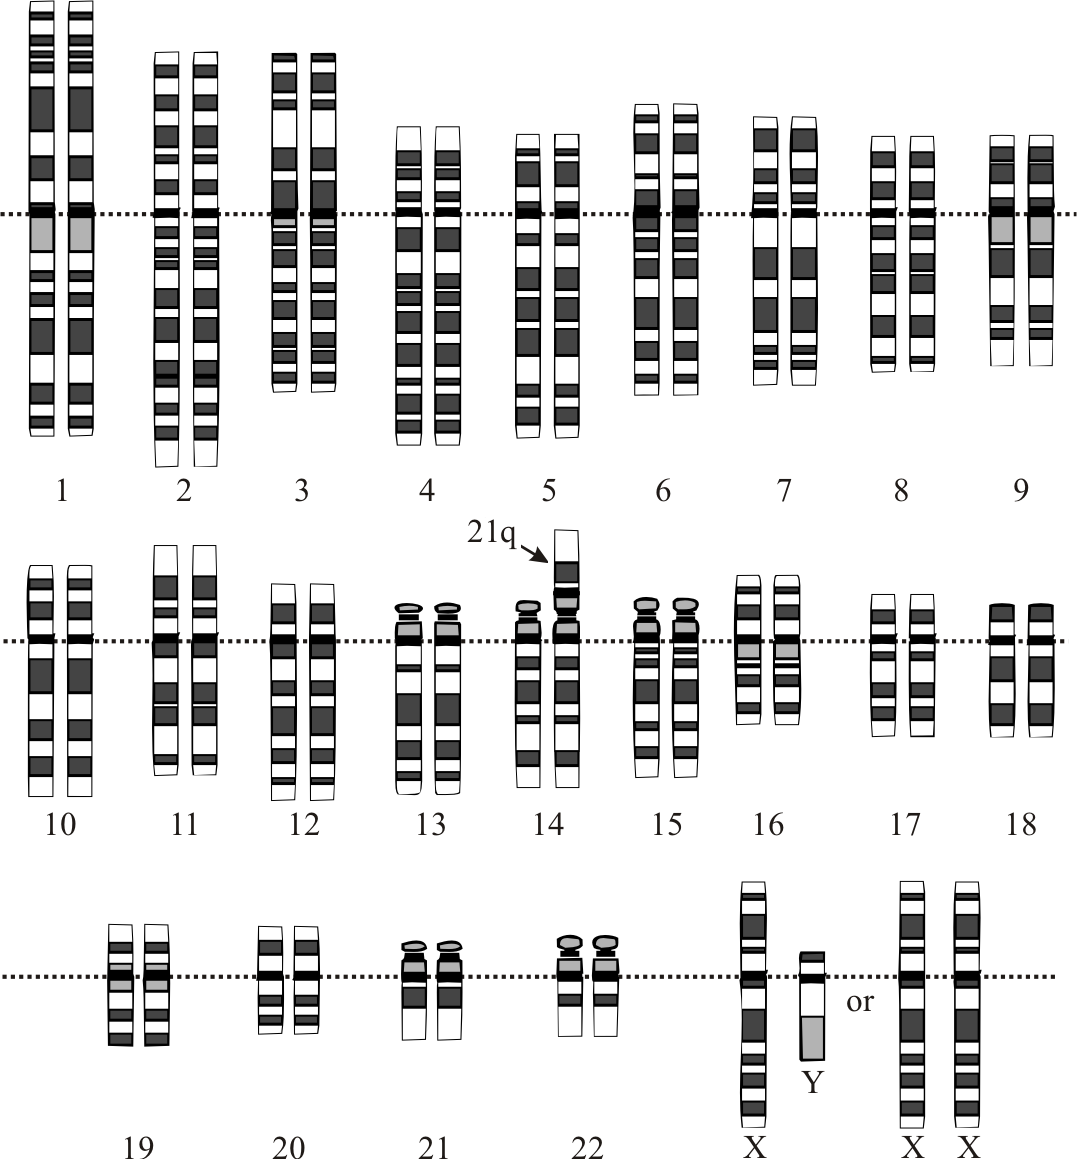 File:Robertsonian translocation rob(14;21).png - Wikimedia ... Robertsonian Translocation Karyotype